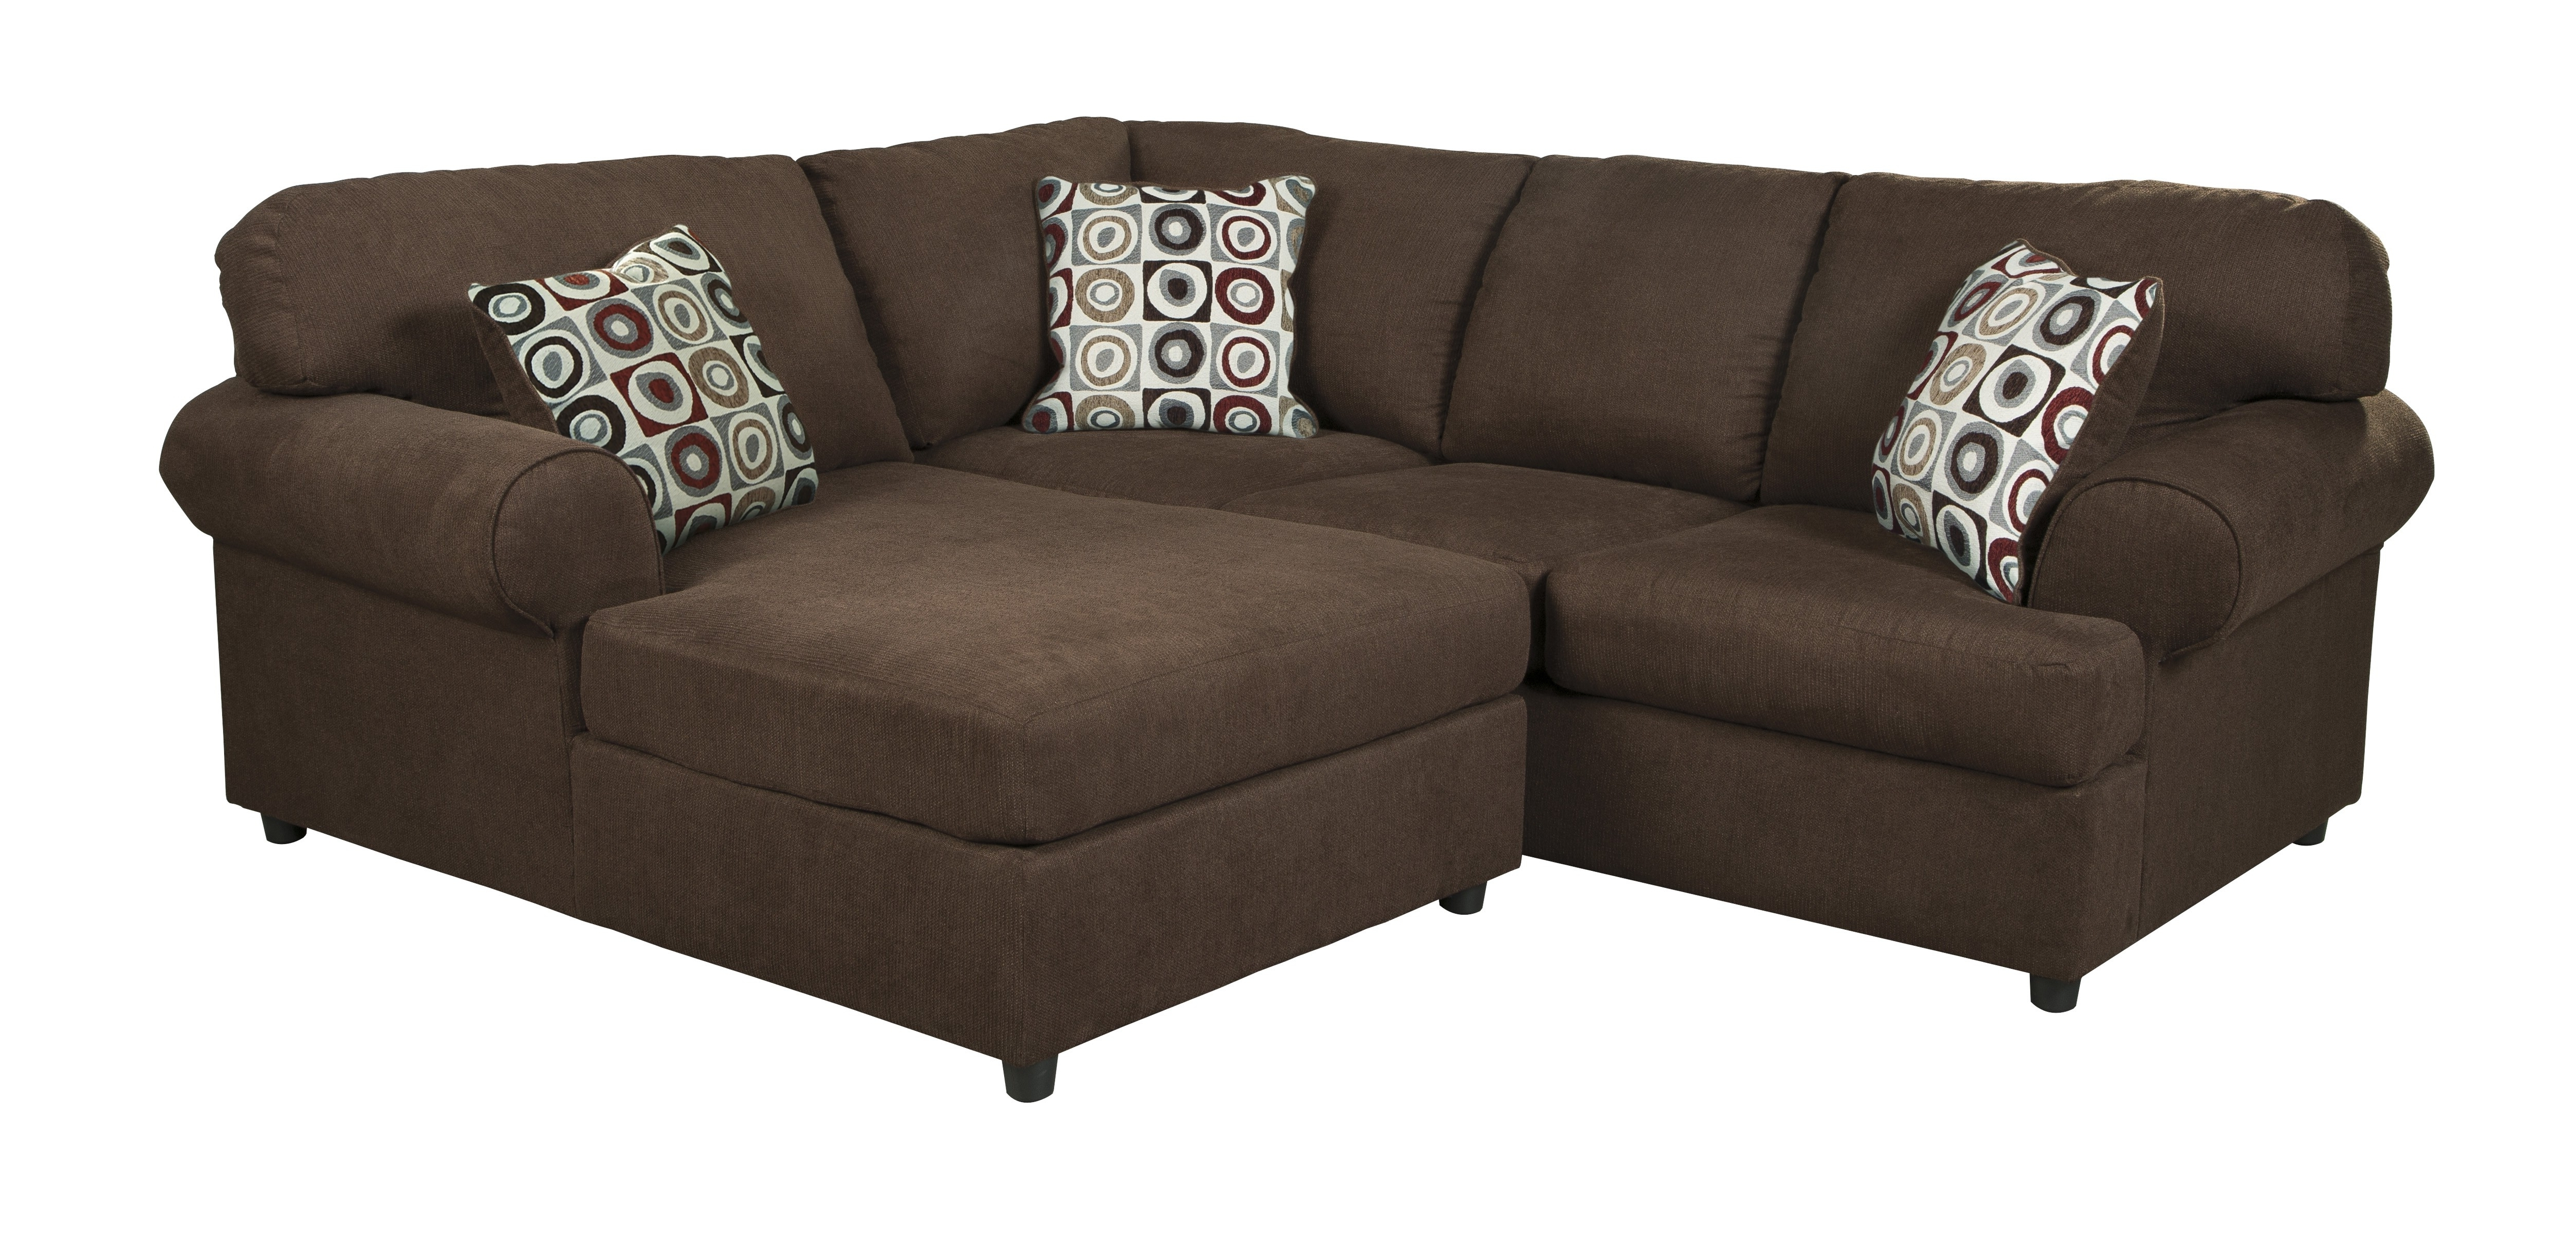 Corner Chaises Pertaining To 2018 Buy Jayceon Java Sectional Raf Corner Chaise And Laf Sofa (View 4 of 15)